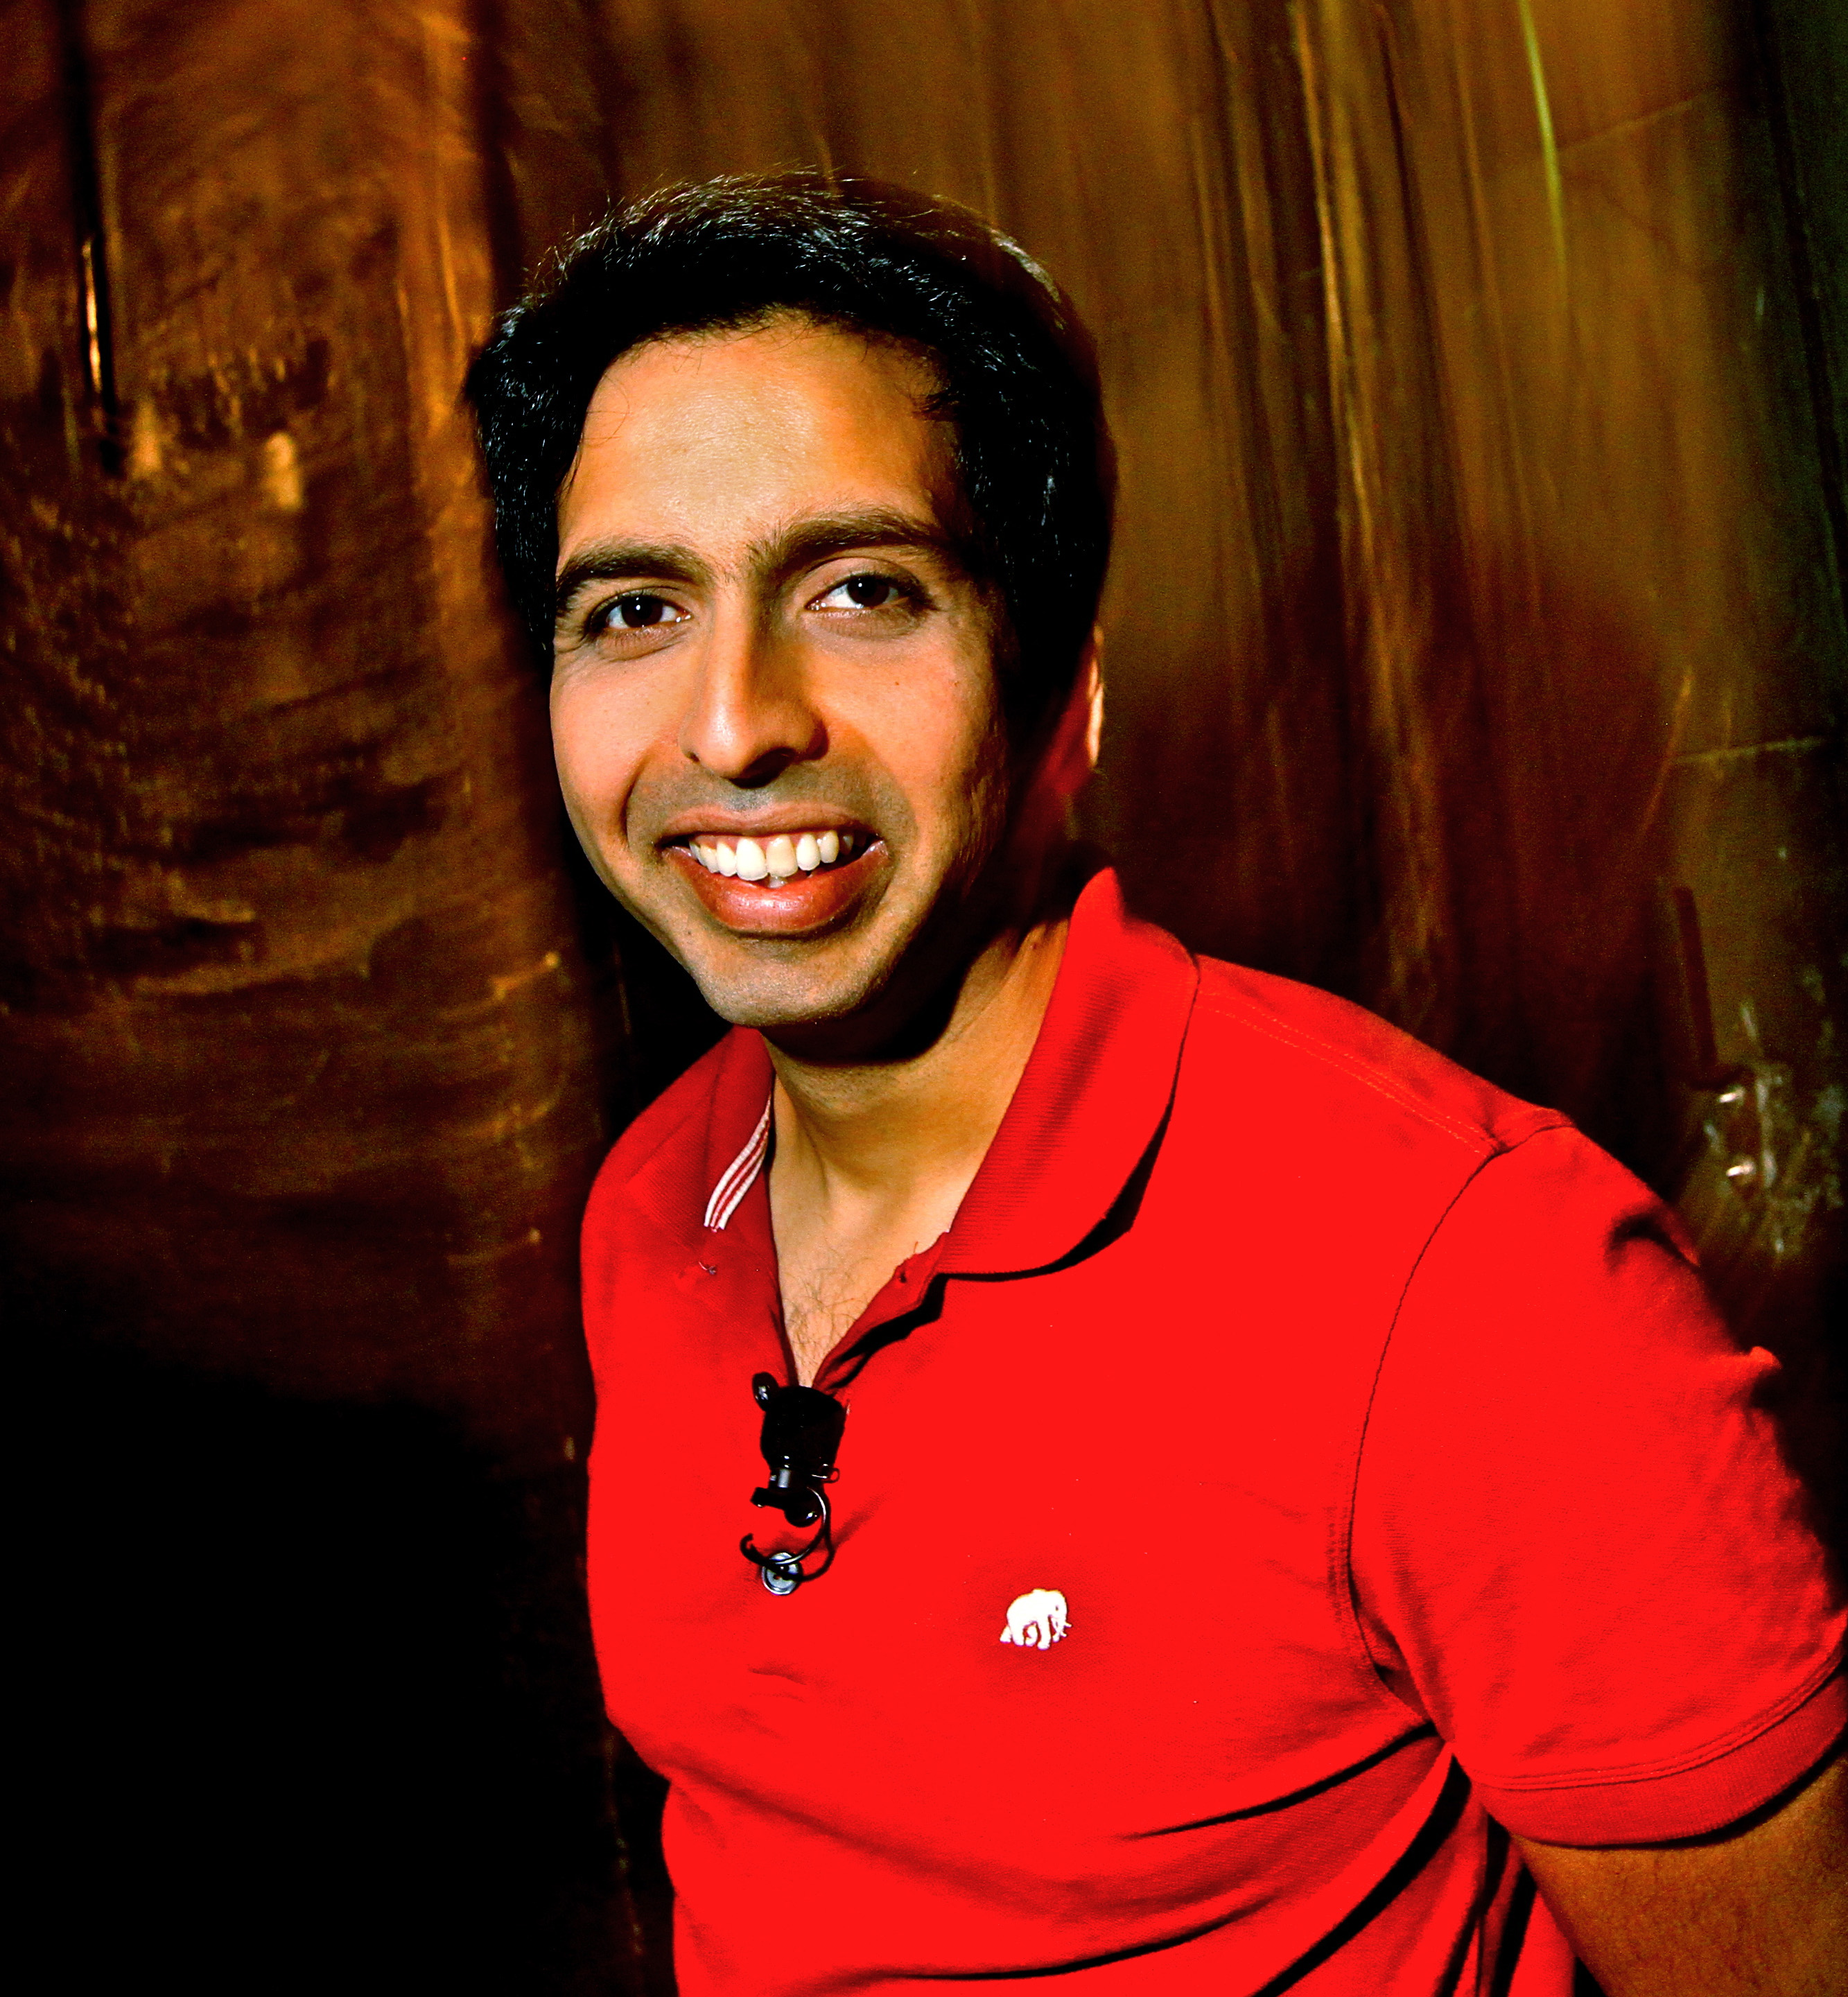 Sal Khan founded Khan Academy, a free e-learning platform, in 2006.